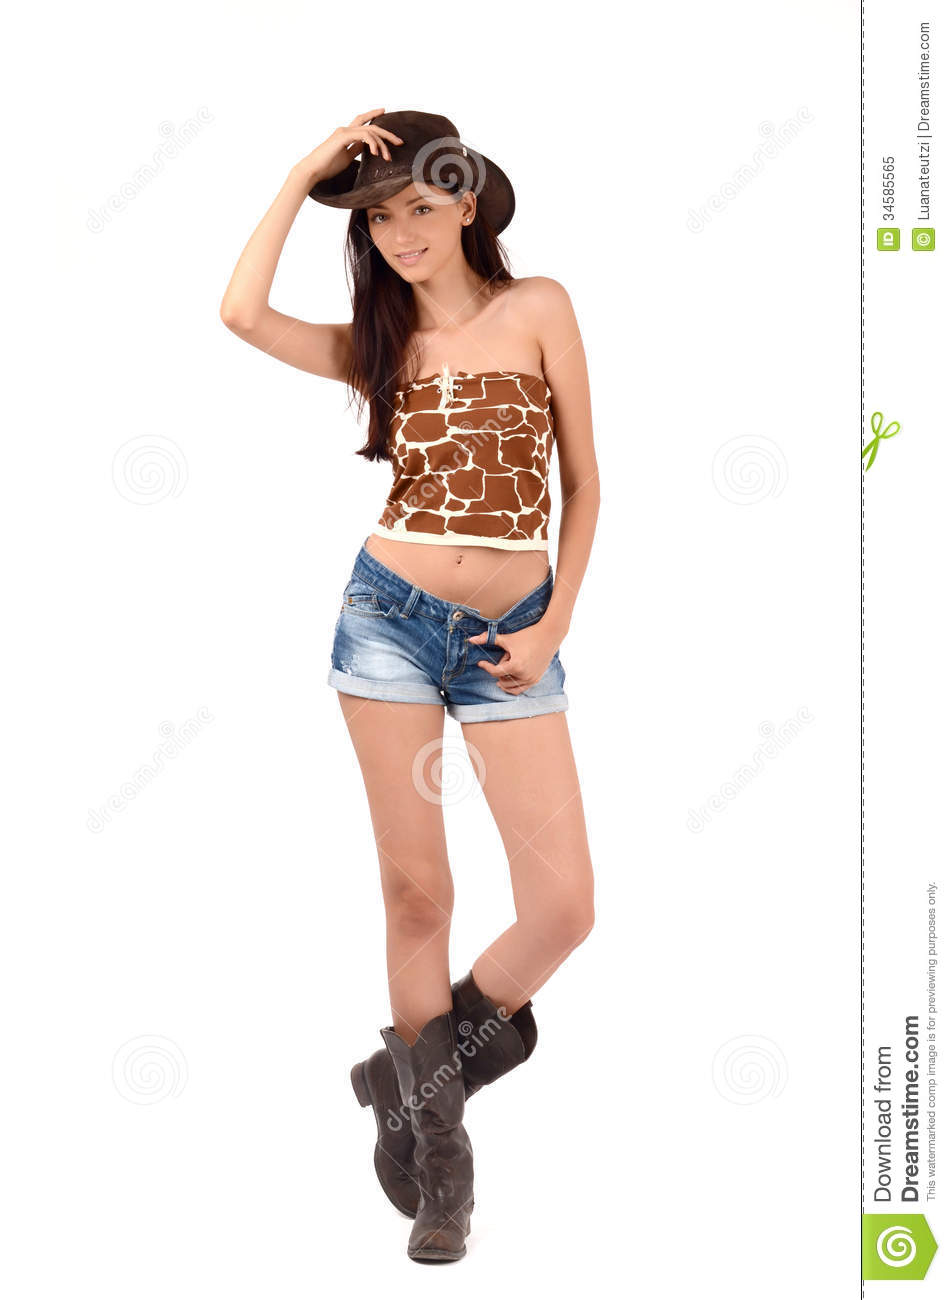 sexy american cowgirl with shorts and boots and a cowboy cowboy boots pictures clip art free Cowgirl Boots